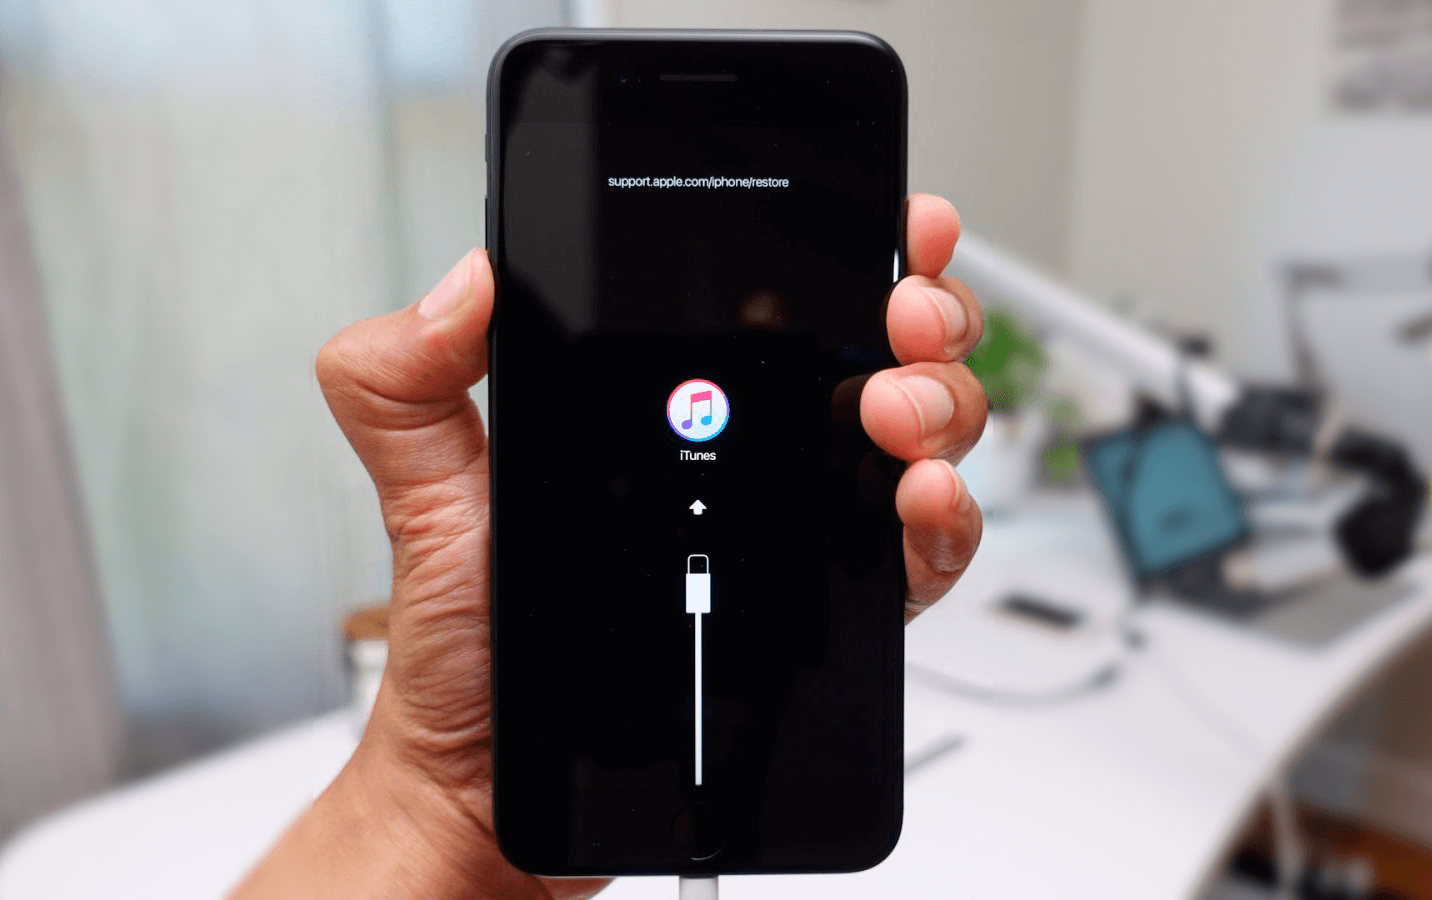 factory reset locked iphone 191 c 243 mo ingresar al modo dfu en un iphone x iphone 8 y 14074